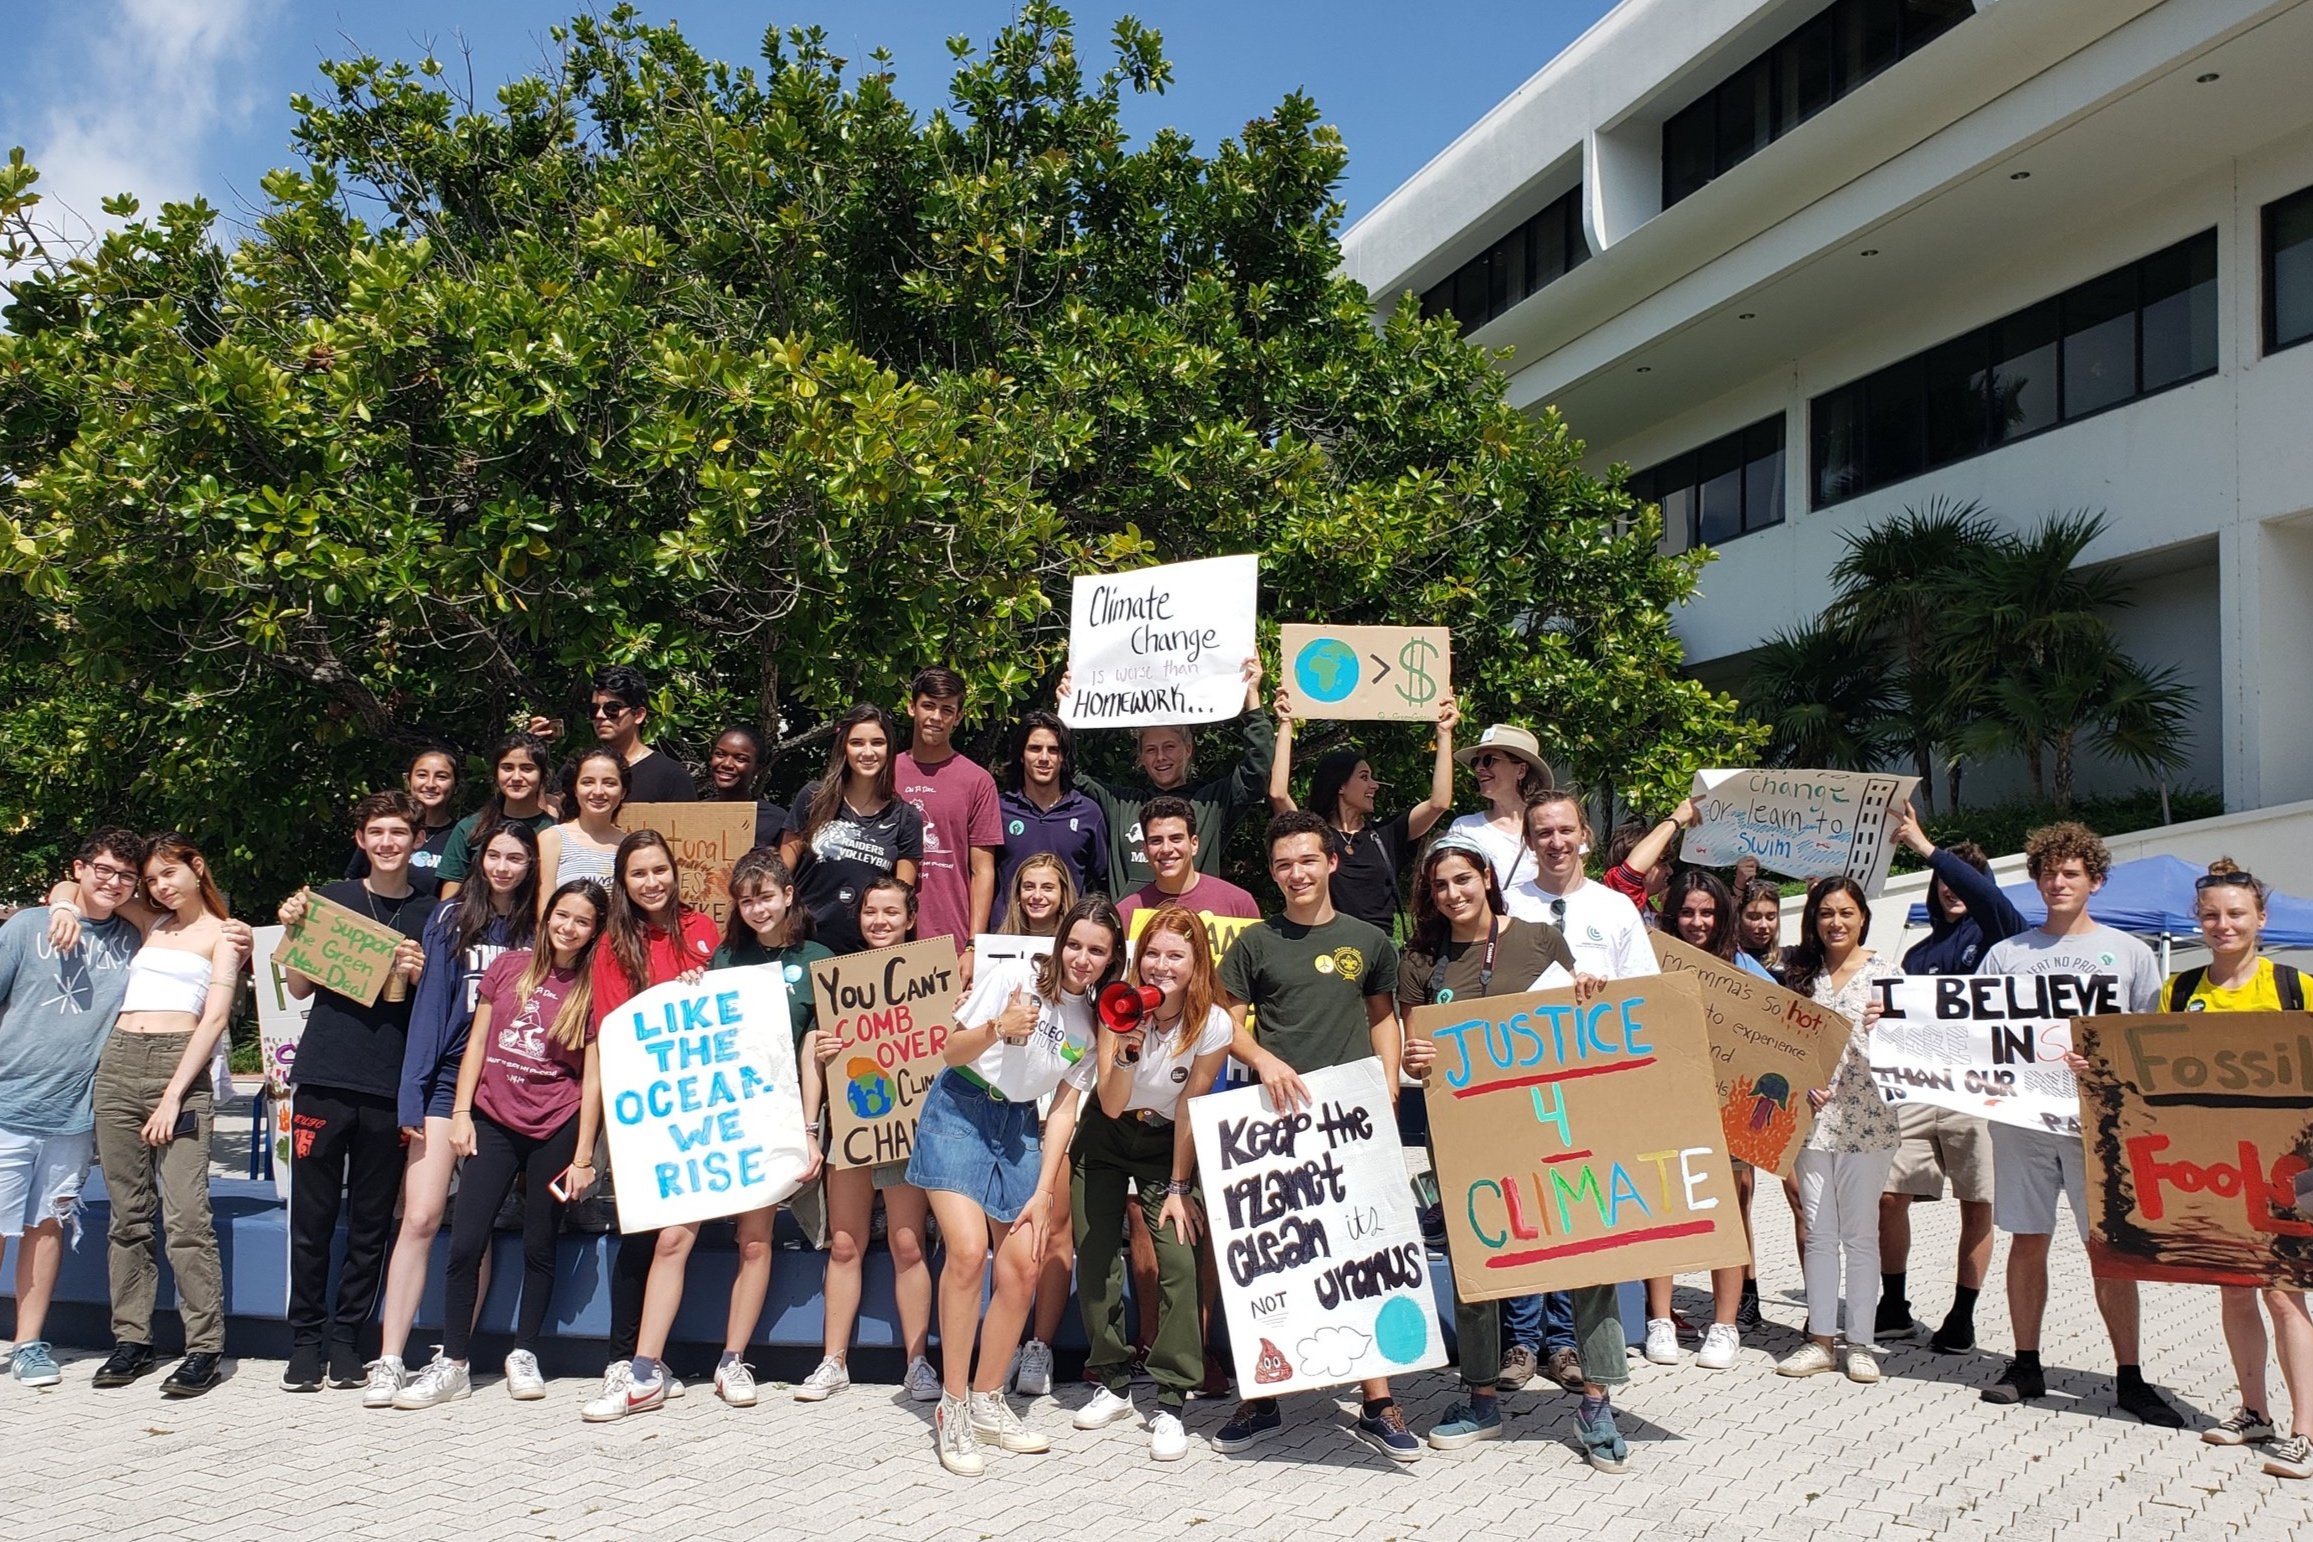 GenCLEO's Youth Empowerment - CLEO engages and empowers high school and college students, as well as young professionals to take climate action. Members attend climate trainings to stay up-to-date on climate change science and share ideas and network via meet-ups.